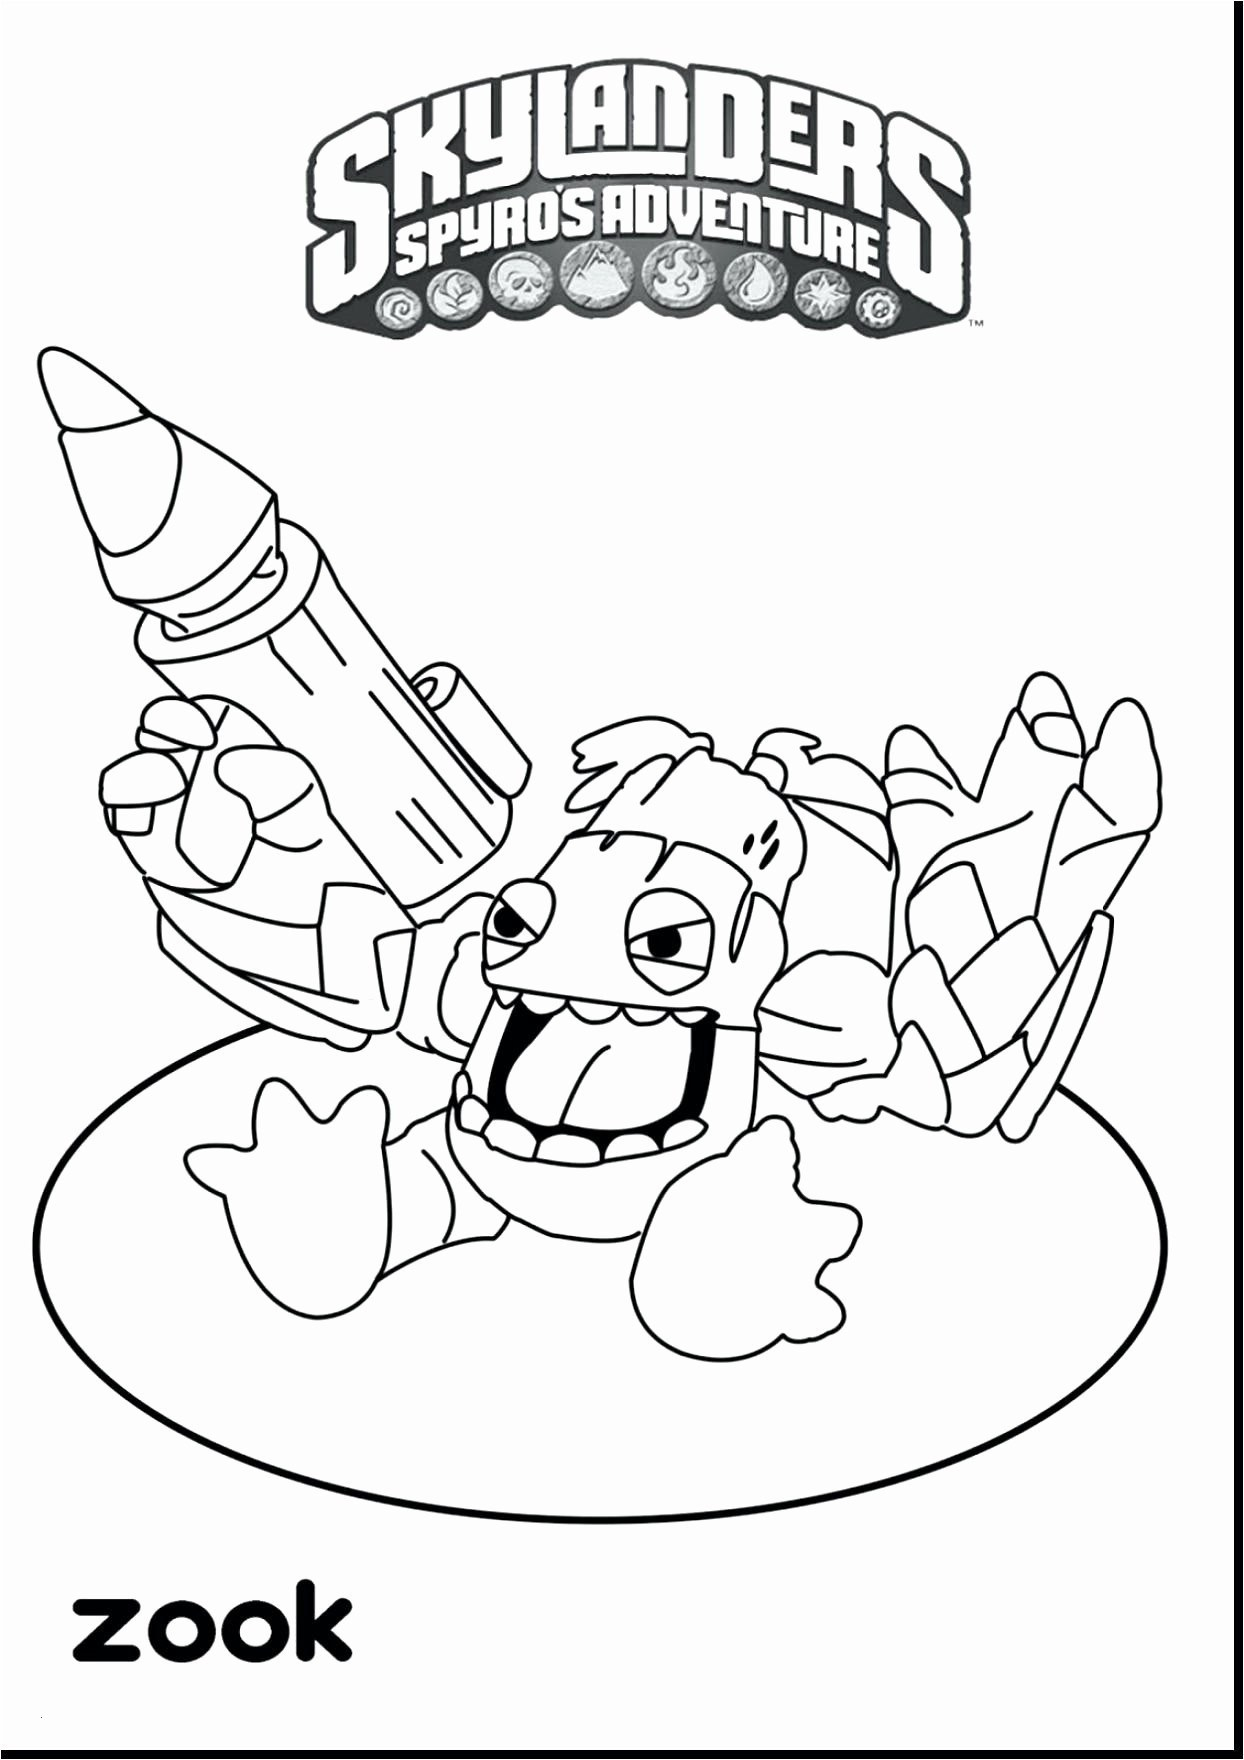 coloring pages for teachers Collection-Free Sun Coloring Pages Coloring Pages for Teachers 21csb 20-k